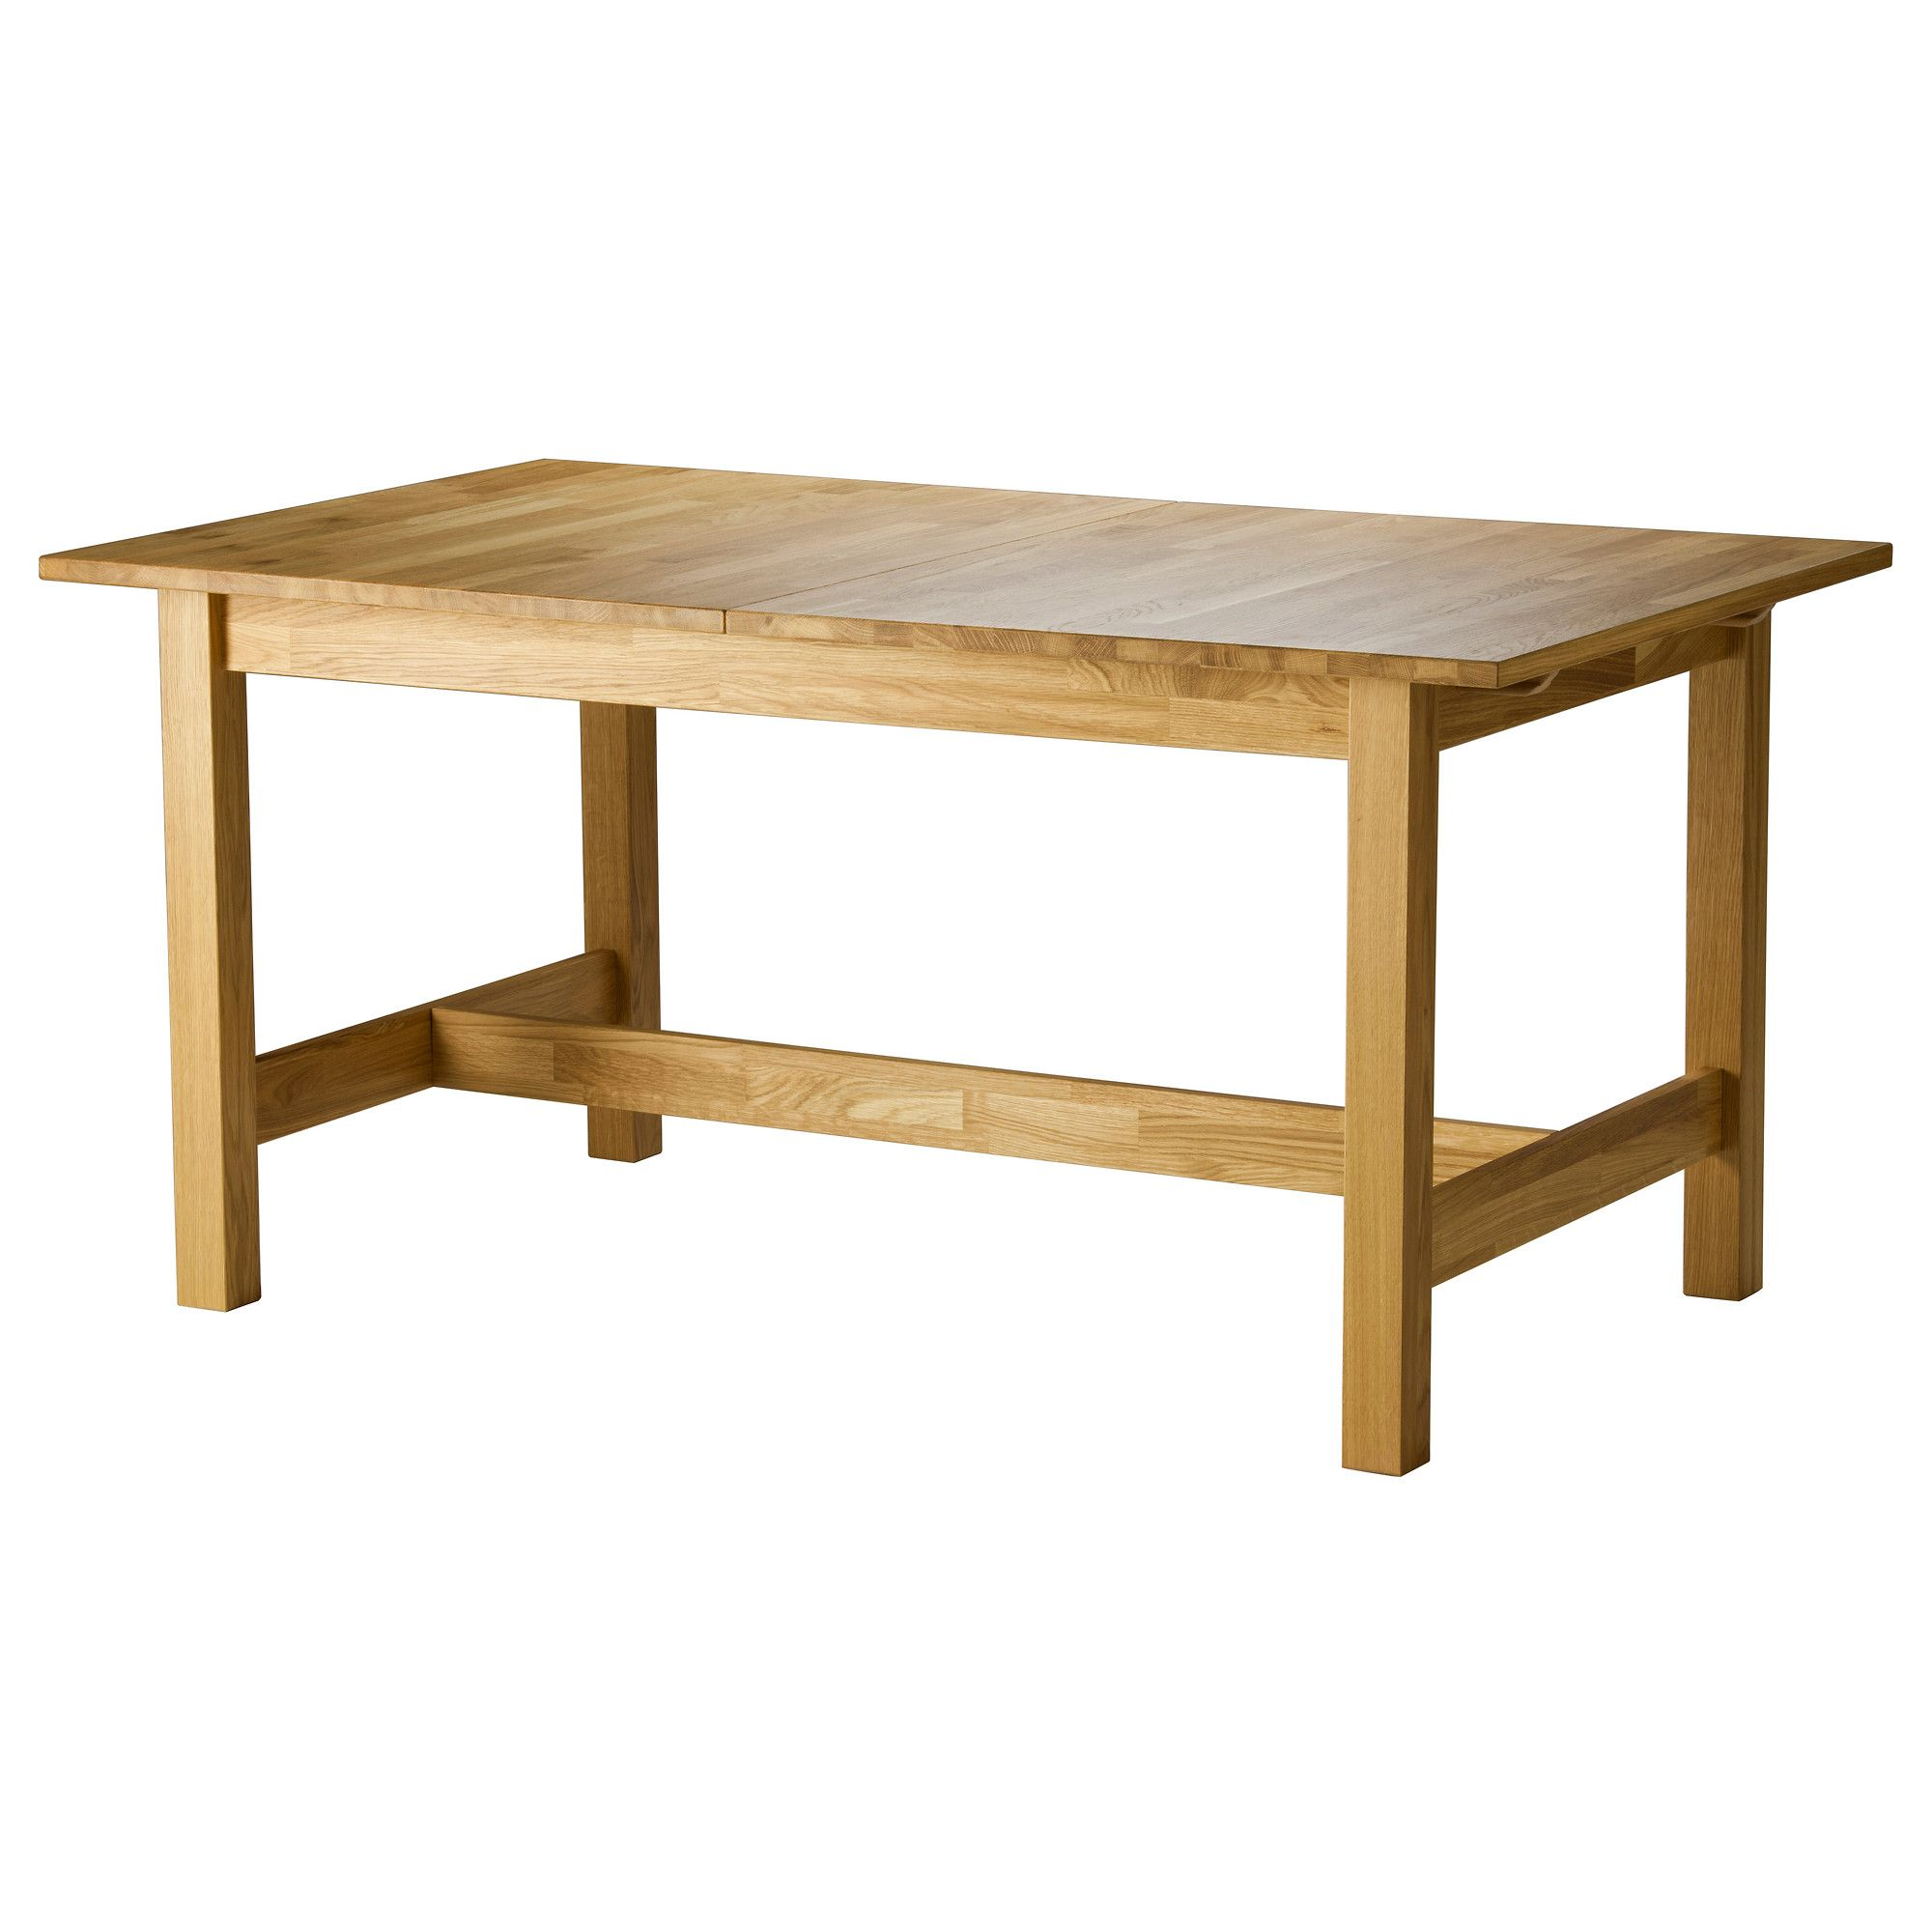 Ordinaire NORDBYN Extendable Table IKEA The 3 Mm Thick Top Layer Of Solid Wood Gives  The Tabletop The Same Look And Feel As Solid Wood.